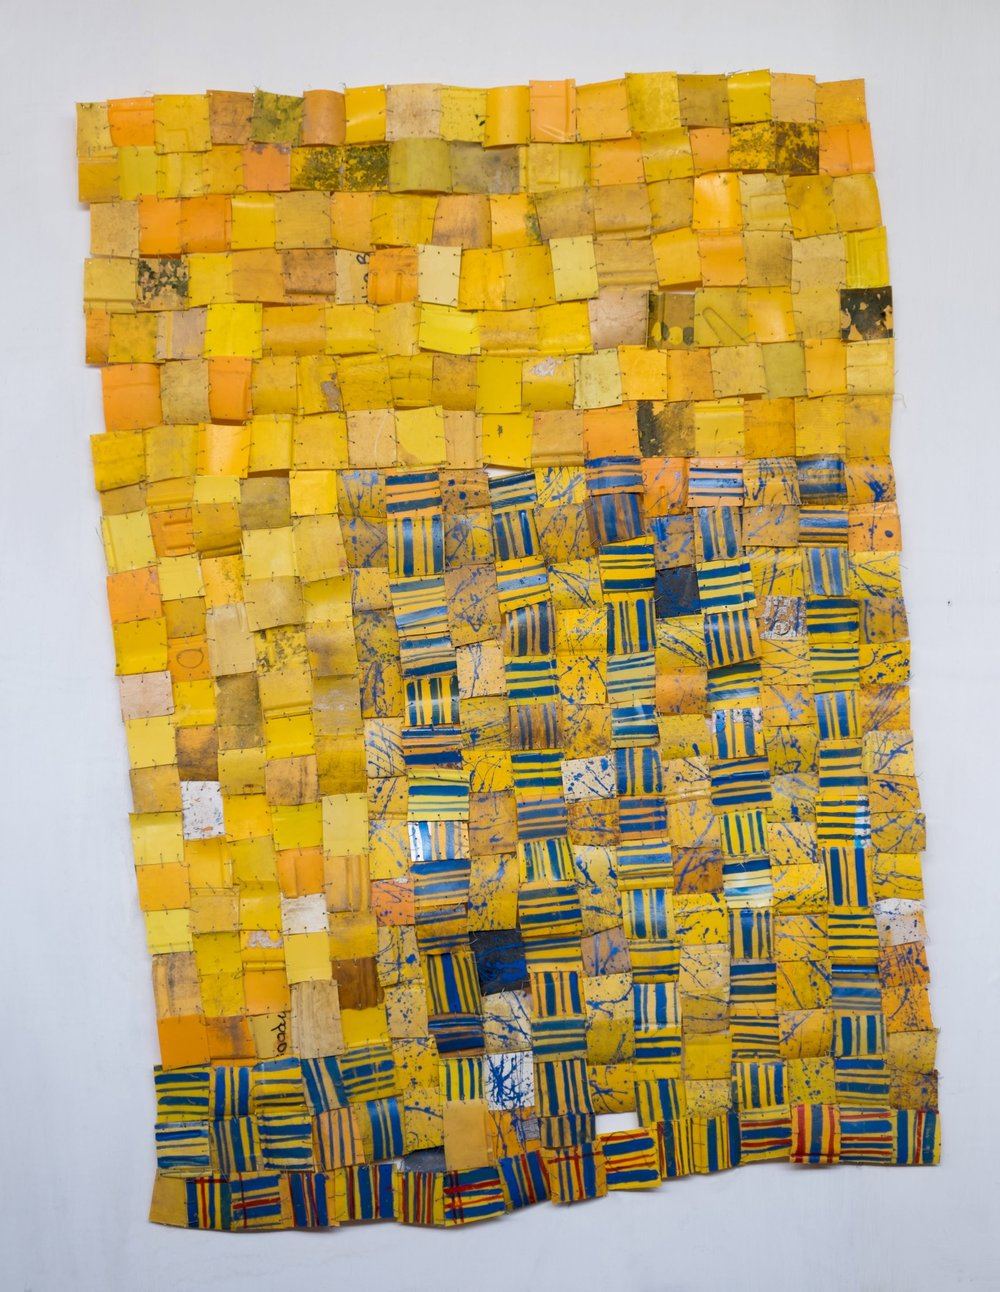 Serge Attukwei Clottey, Intents and Purposes, 2016, plastics, wire and oil paint, 53''x 75'', courtesy the artist and Gallery 1957